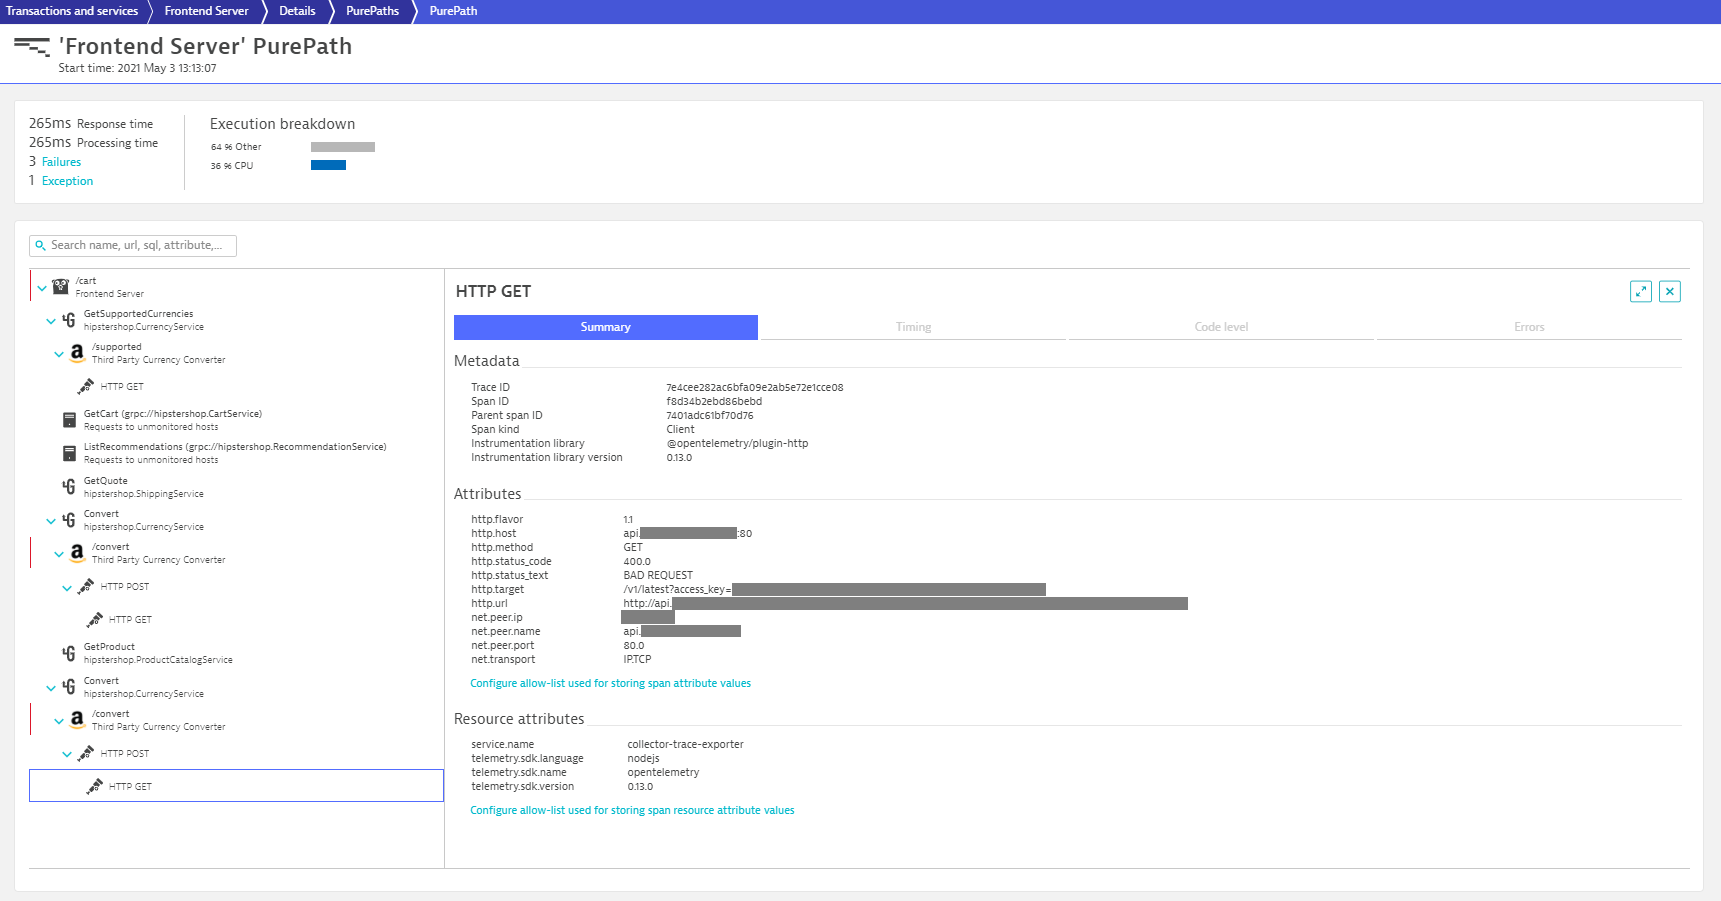 Dynatrace provides observability for ingested OpenTelemetry traces